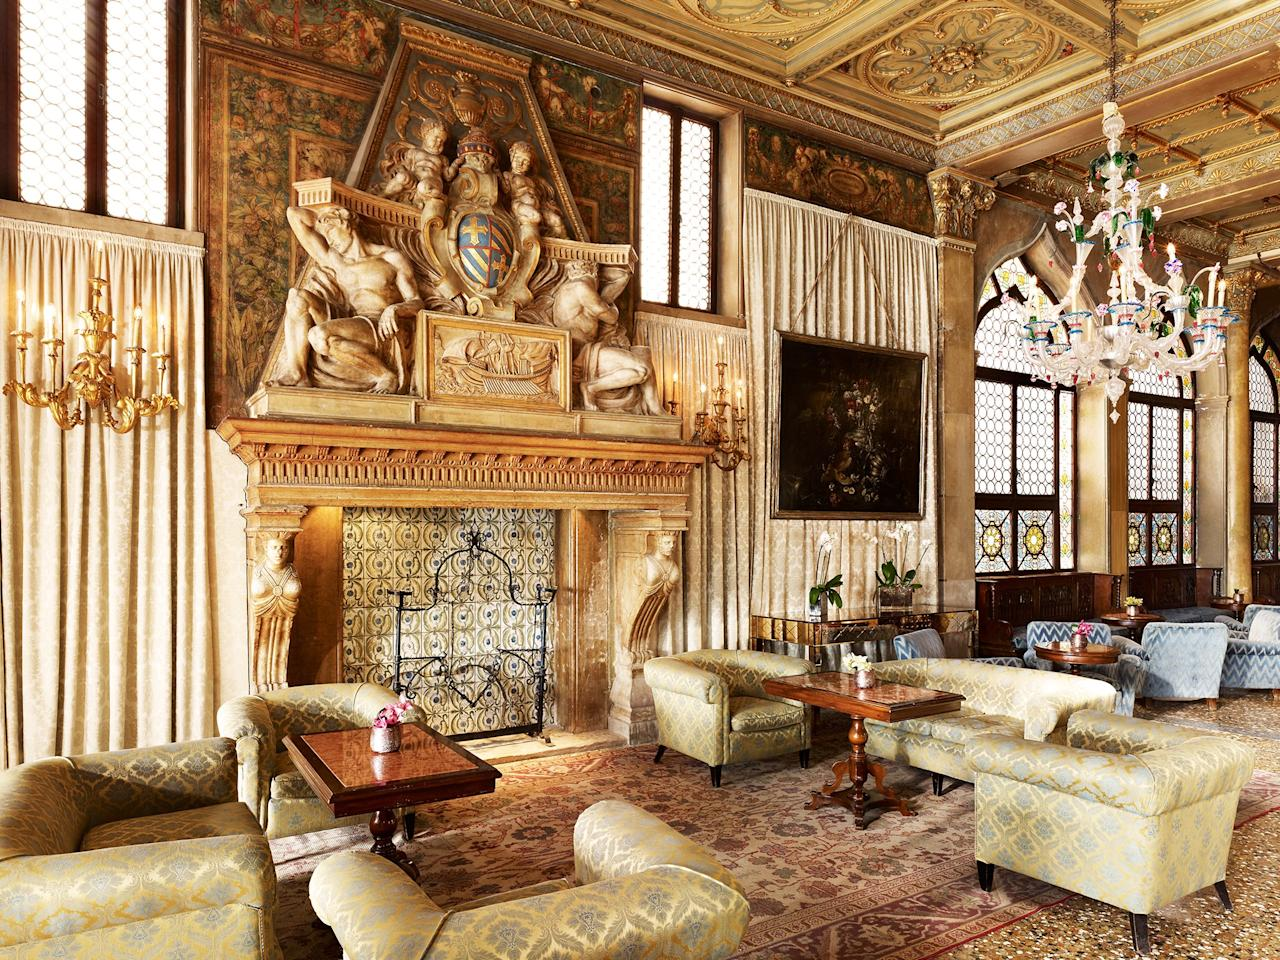 """As one of the city's most important landmarks, the <a href=""""https://www.cntraveler.com/hotels/italy/roma/hotel-danieli-luxury-collection-venice?mbid=synd_yahoo_rss"""" target=""""_blank"""">Hotel Danieli</a>—and the 204 stately guest rooms inside—is a showcase of Venetian excellence. Set on Riva degli Schiavoni, the grand building, a converted 14th-century Doge's palace, dominates the lagoon. It sits just a short stroll away from the Bridge of Sighs and the monuments of Piazza San Marco. At the rooftop restaurant, Terrazza Danieli, you'll find simple but thoughtful Venetian dishes—think a wild sea bass fillet in a light sauce of sea urchin, or a veal cutlet with caramelized milk bread. Relax after a day out on the terrace, which has unobstructed views of San Giorgio Maggiore island."""